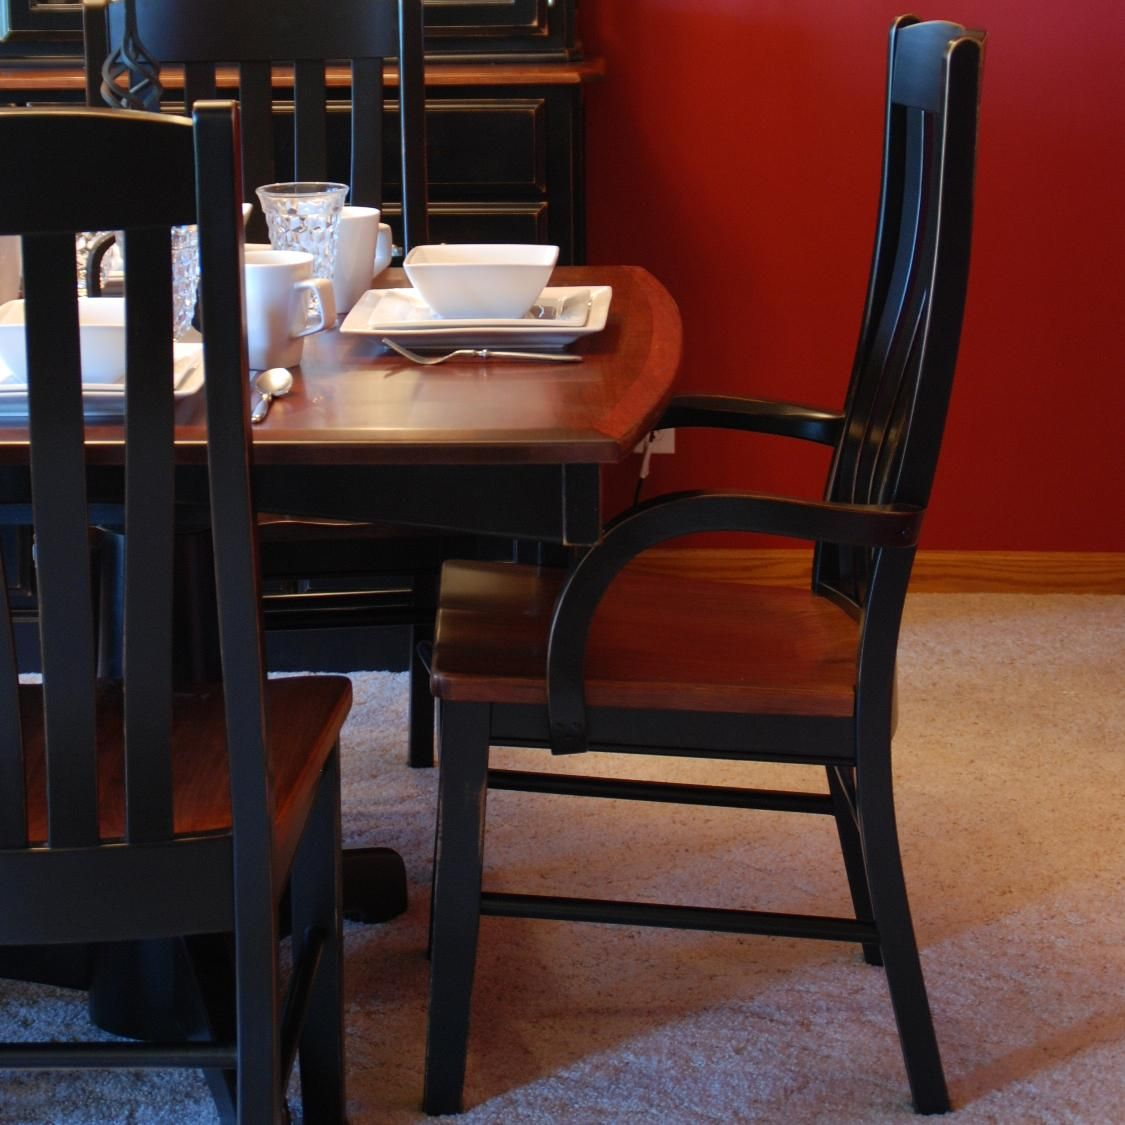 Casual Dining Contour Arm Chair By Oakwood Industries Available At Www Muellerfurniture Com Or